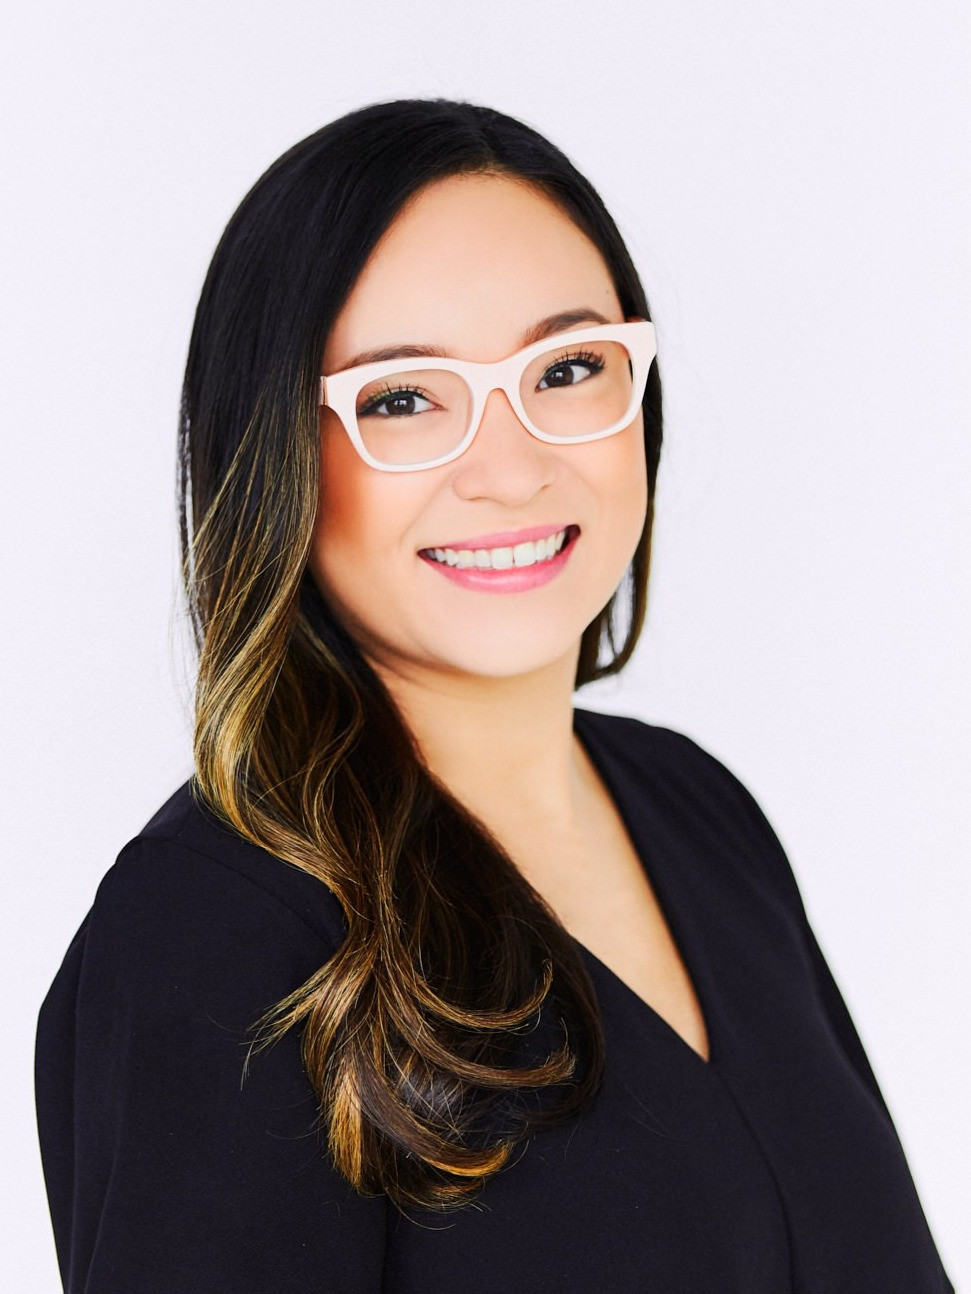 headshot Evy Camacho woman with glasses smiling